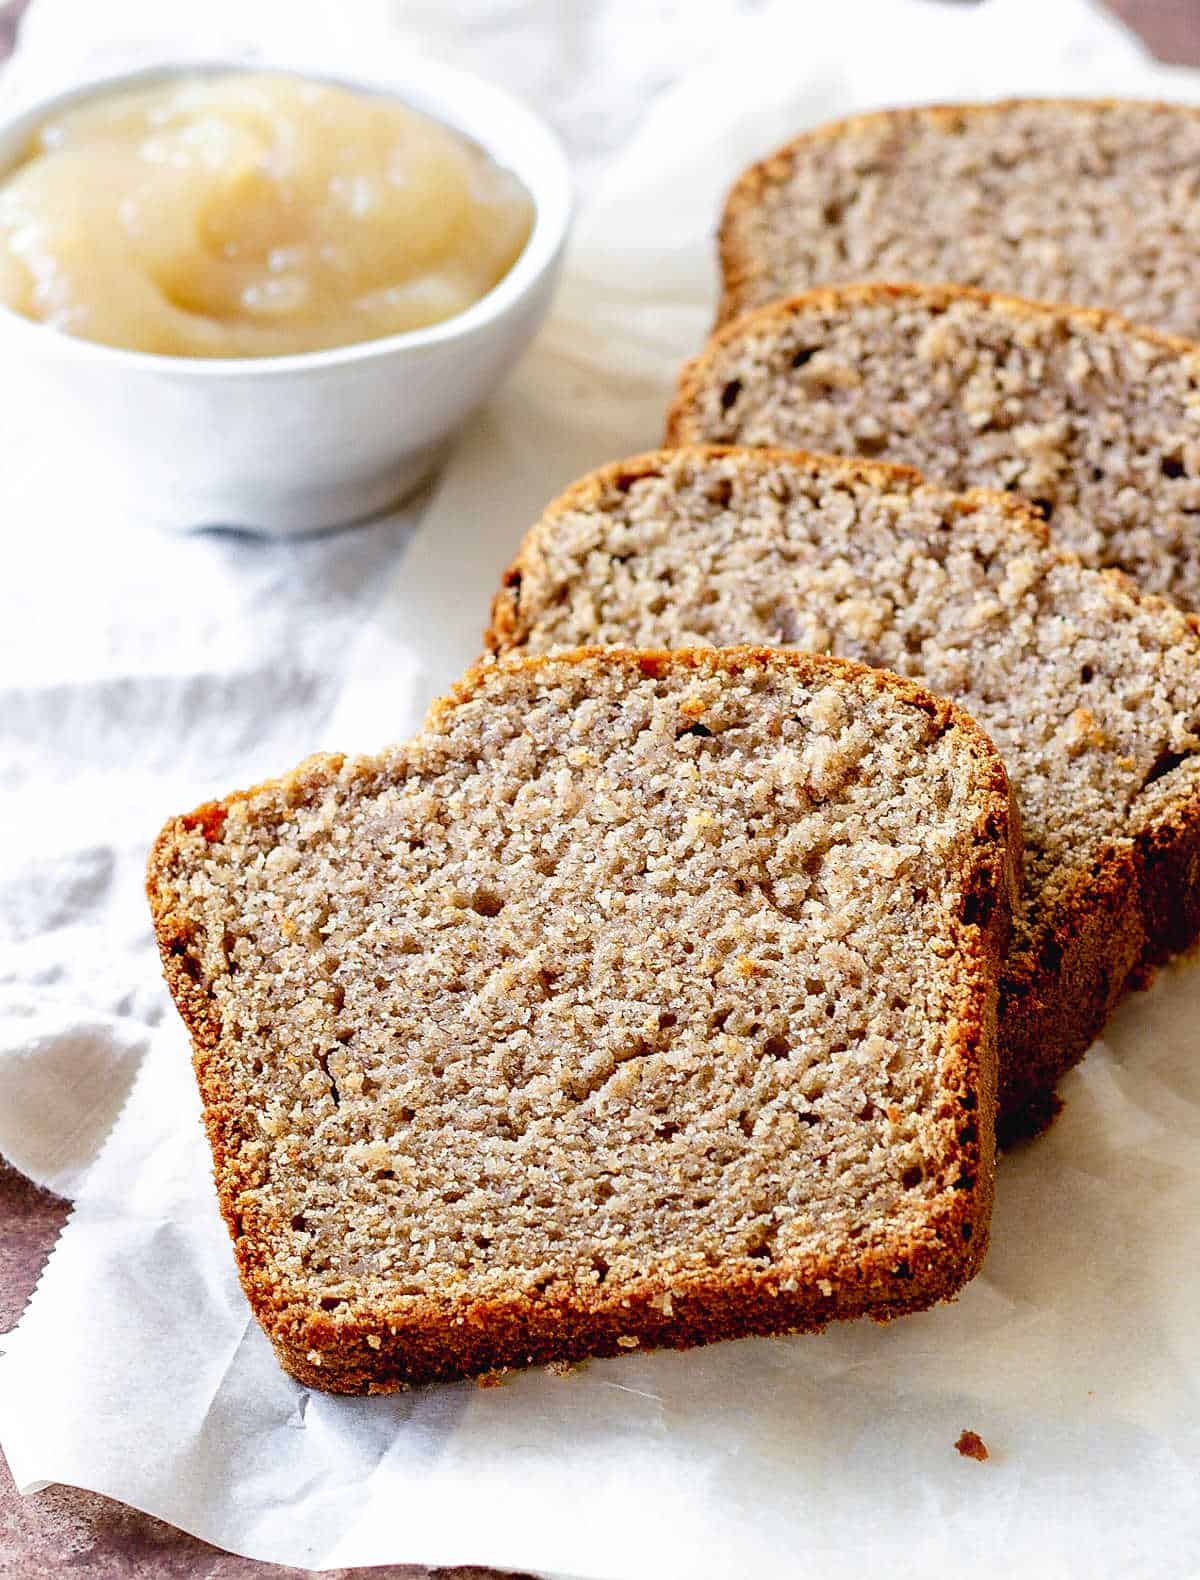 Slices of applesauce bread on white kitchen cloth, white bowl in back with applesauce